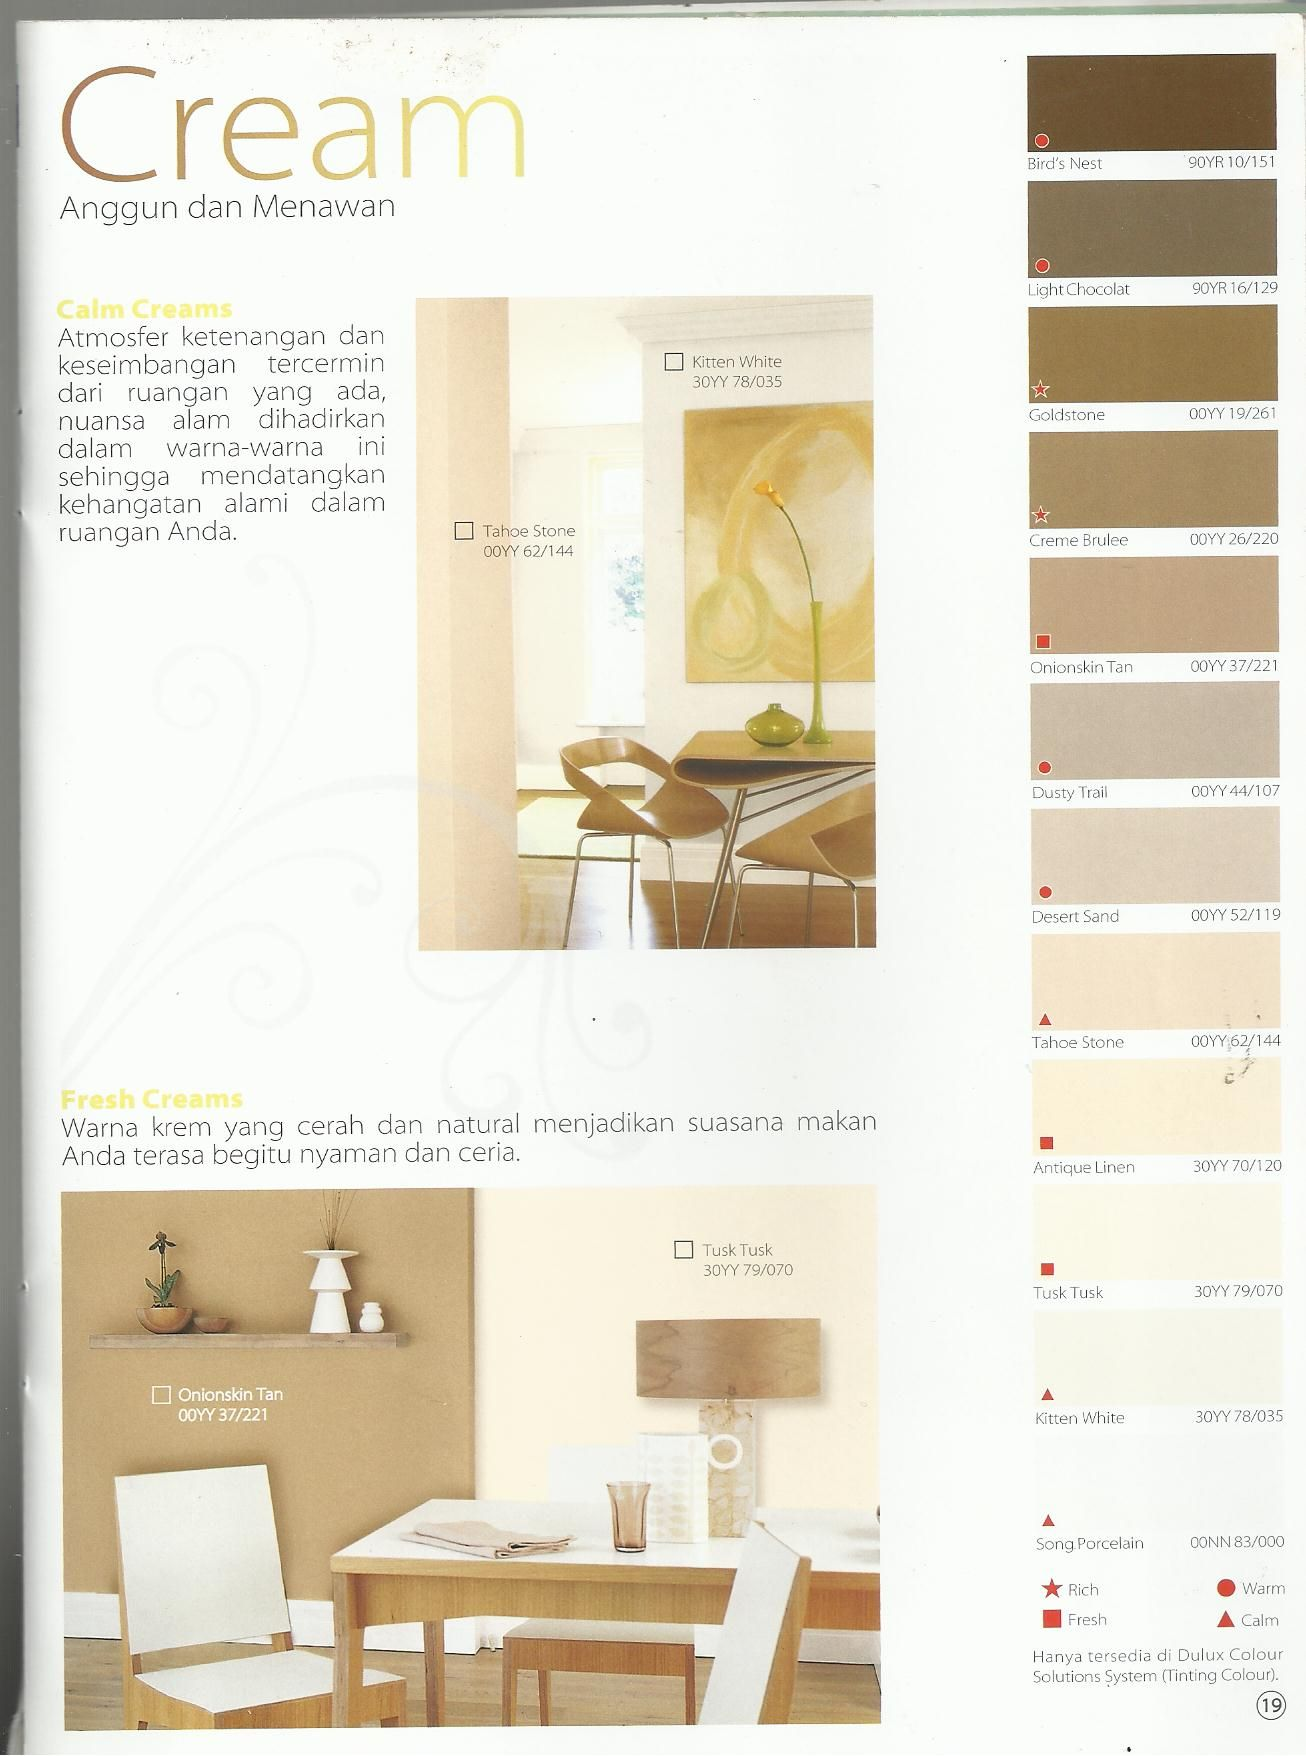 Find This Pin And More On Brosur Dulux Interior Shades 2009 2010 By Odlpku